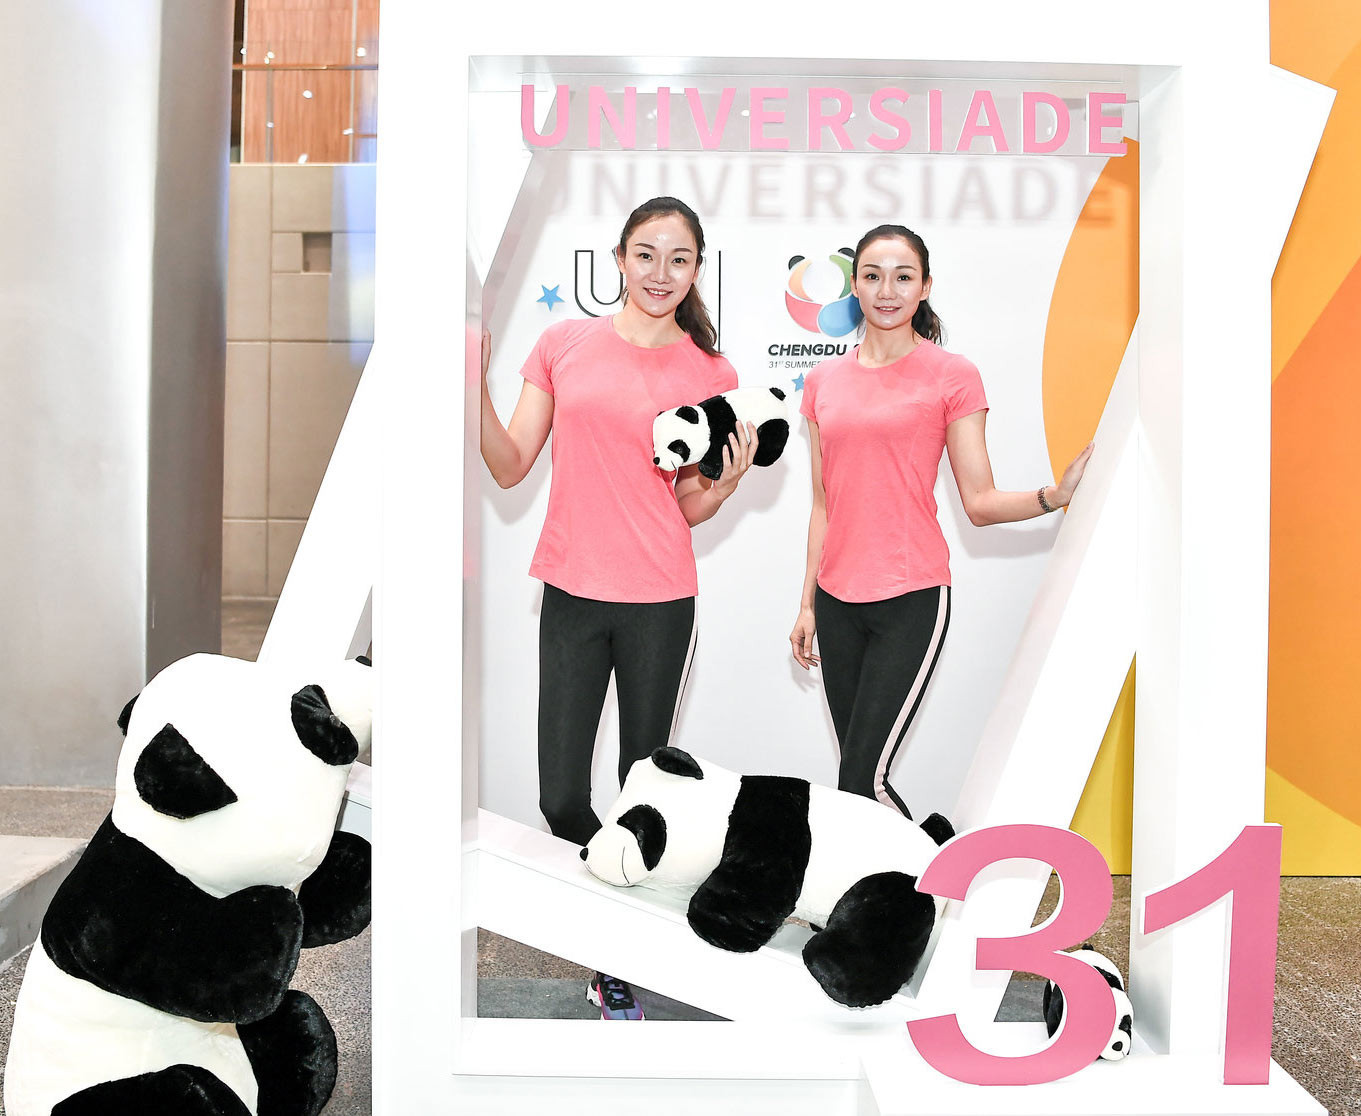 Chengdu is famous around the world for its pandas and they are set to feature heavily in its marketing campaign for the 2021 Summer Universiade launched in Beijing ©FISU